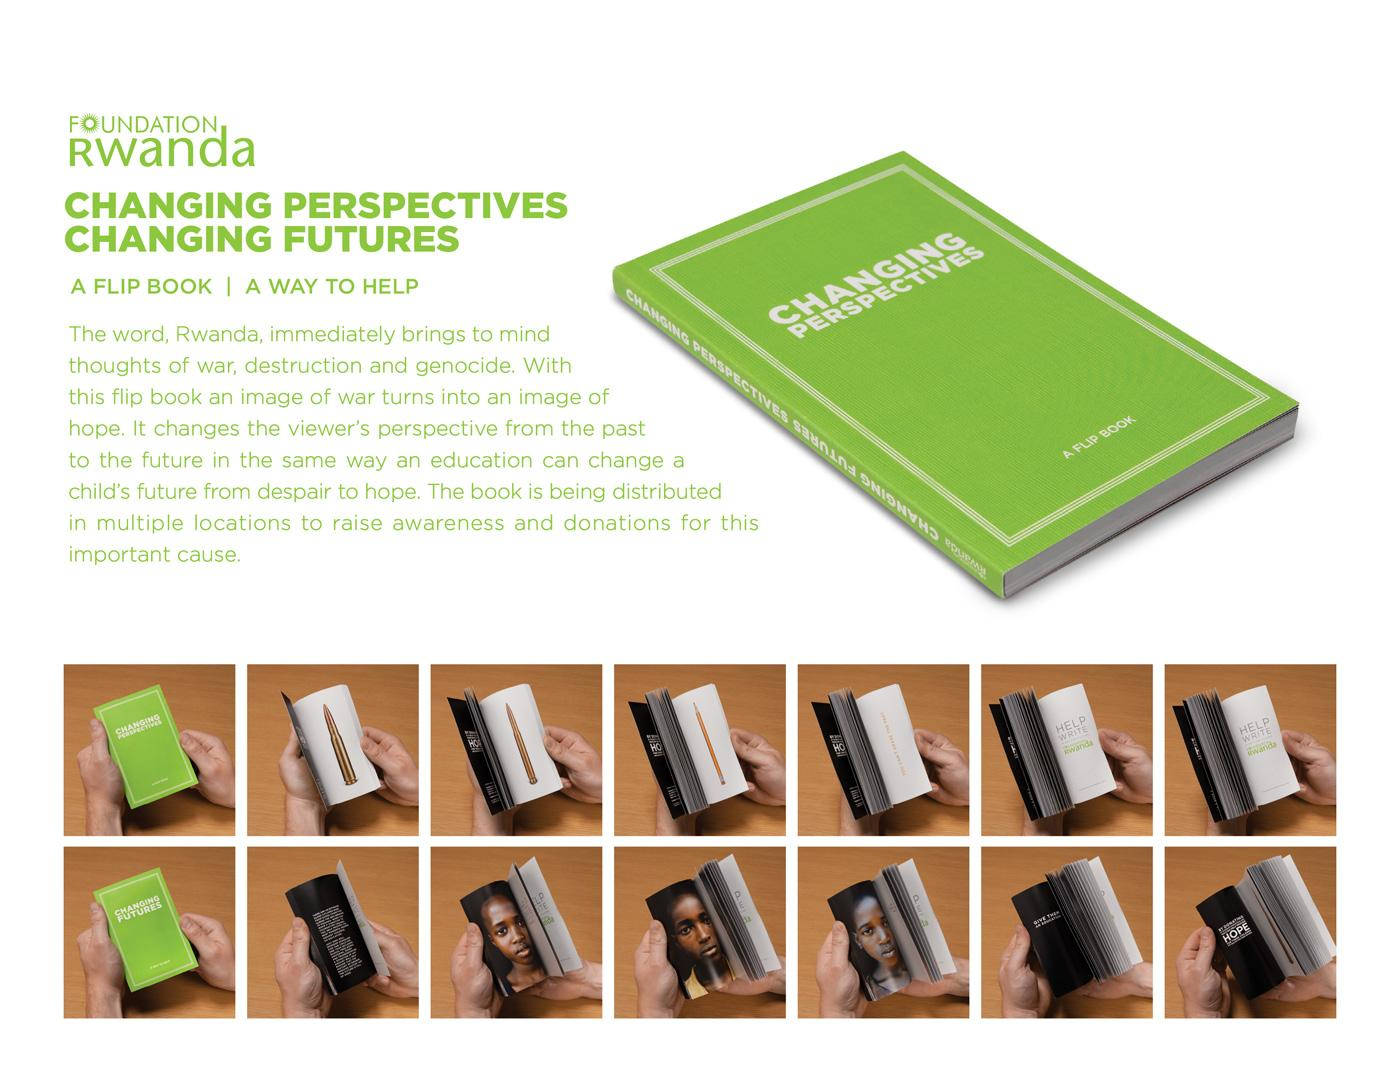 Foundation Rwanda Direct Ad -  Changing Perspectives | Changing Futures